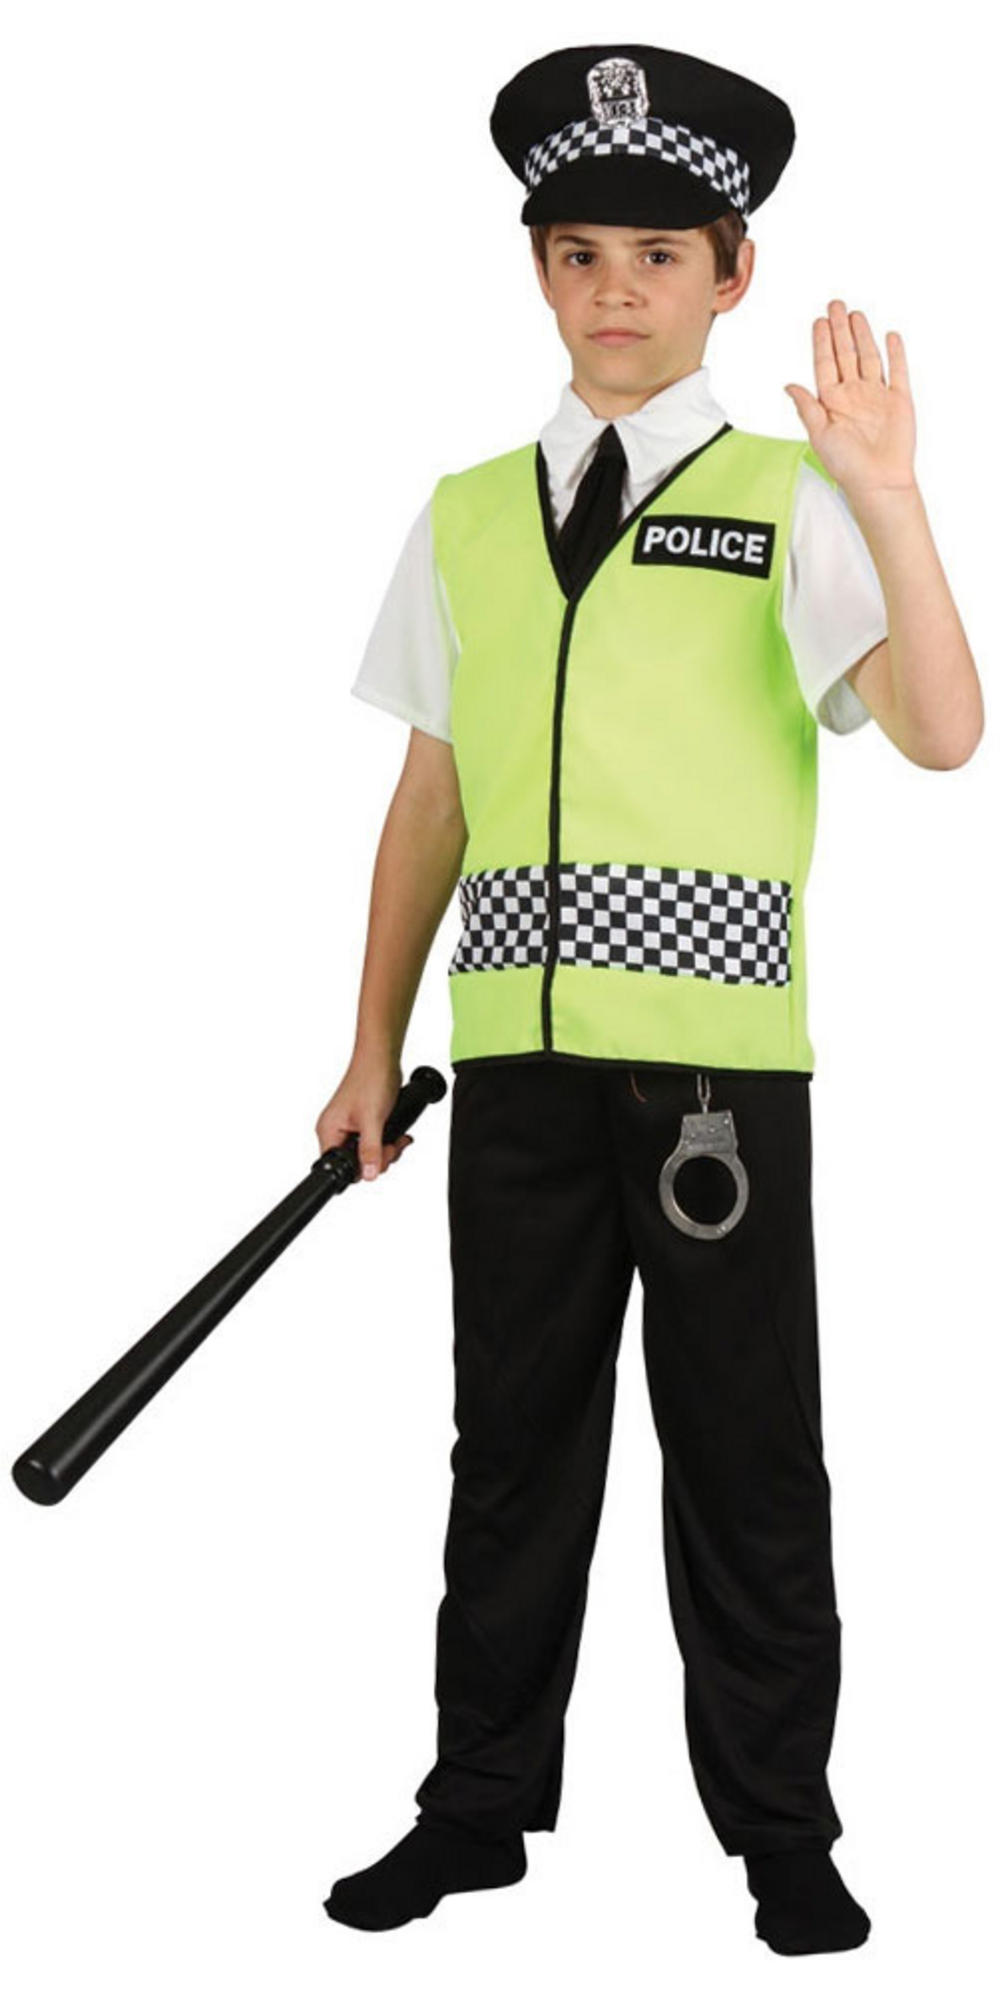 Policeman costume military and uniform costumes mega fancy dress - Police officer child costume ...